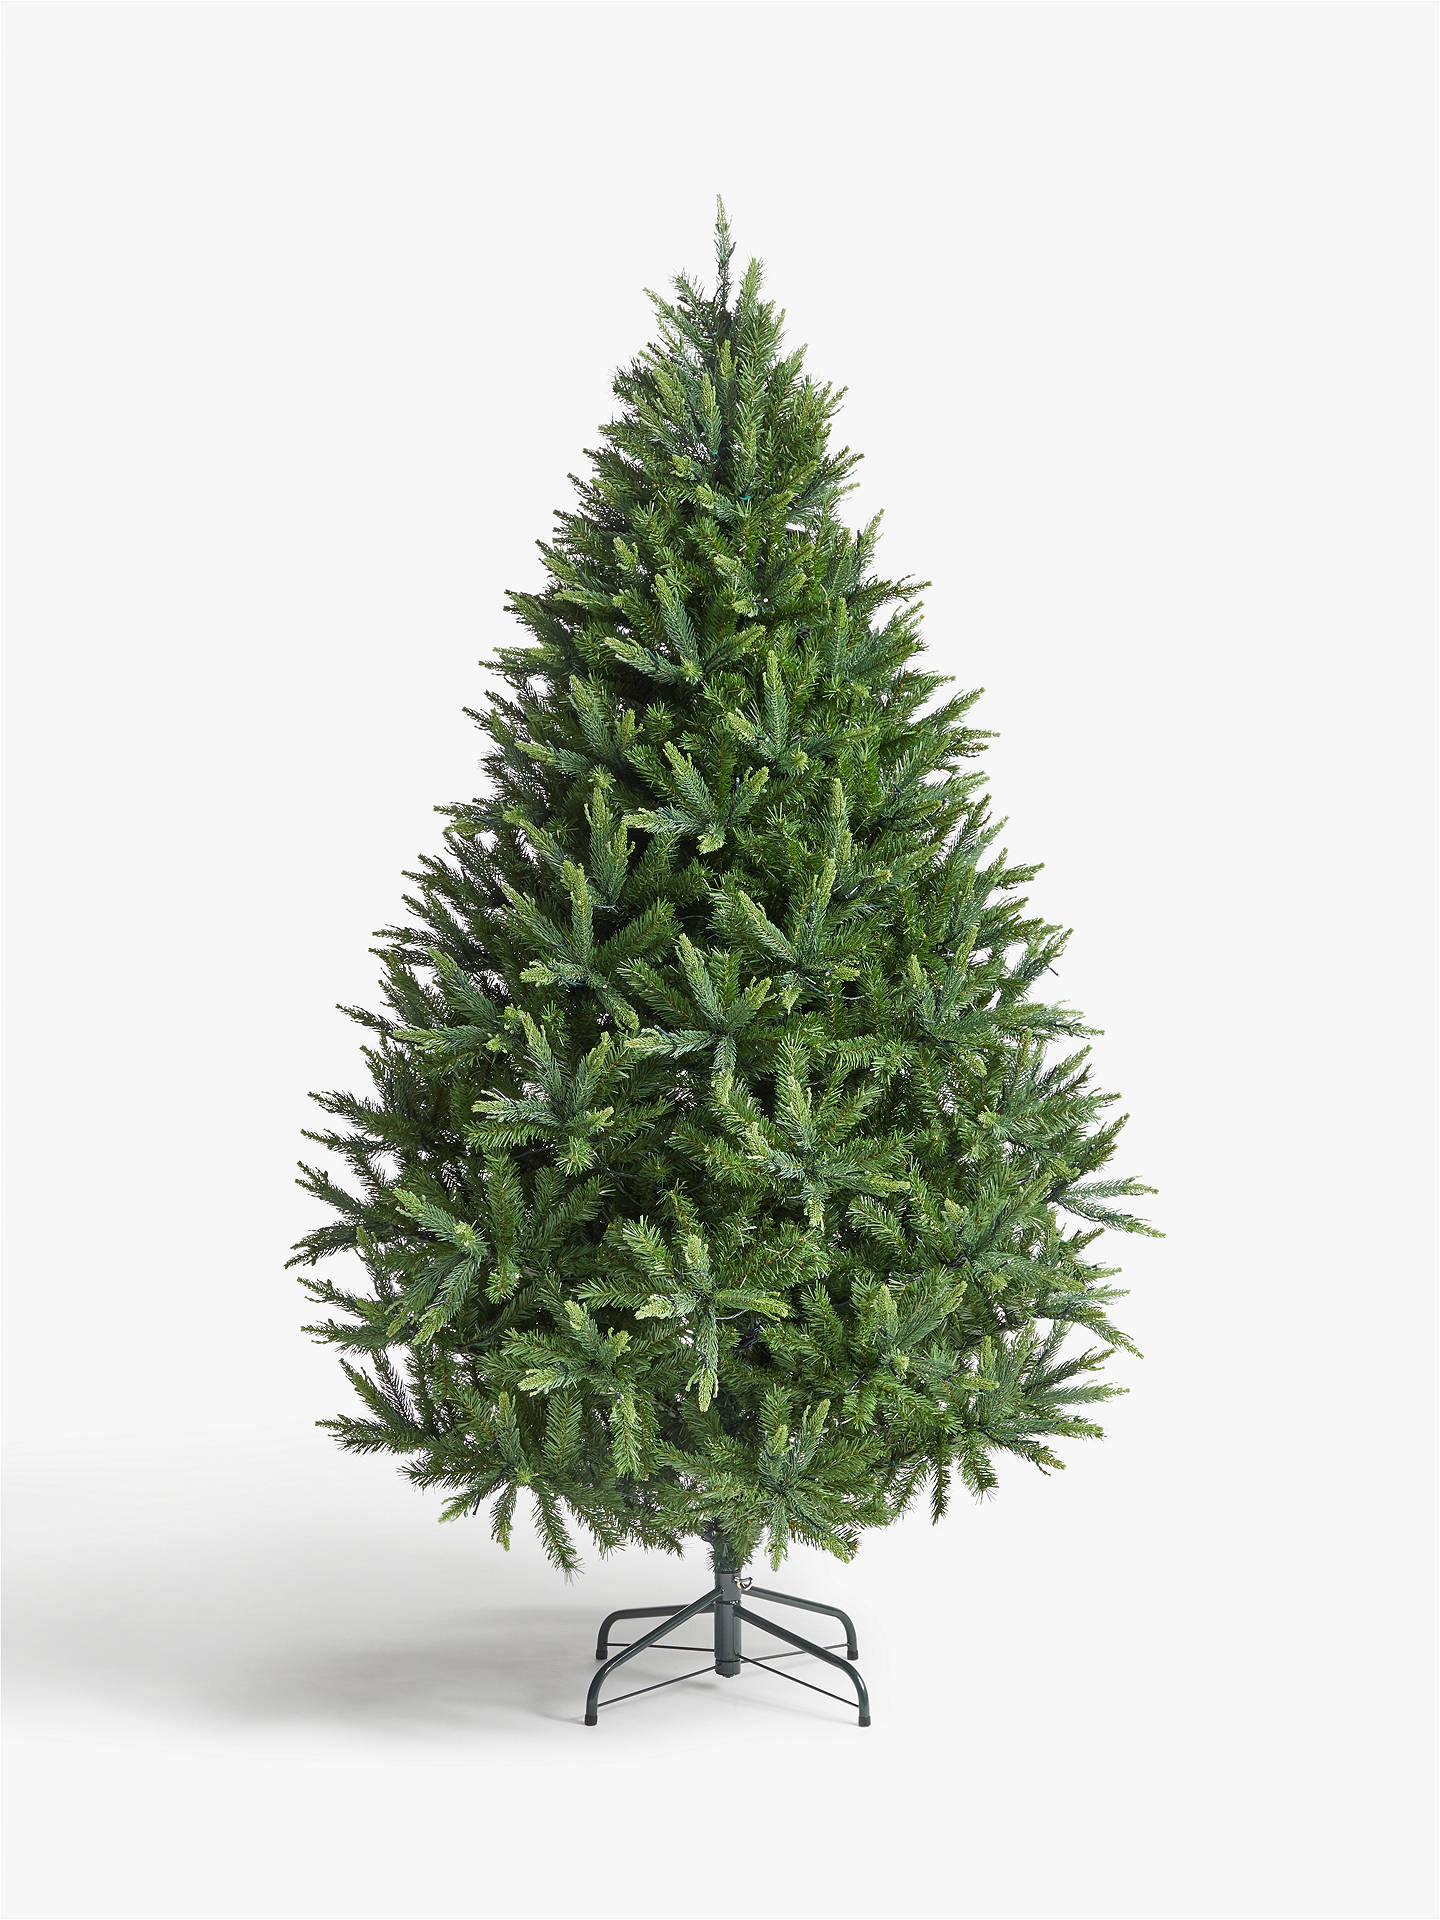 Buy John Lewis & Partners Peardrop Pre-Lit Christmas Tree, 7ft Online at johnlewis.com